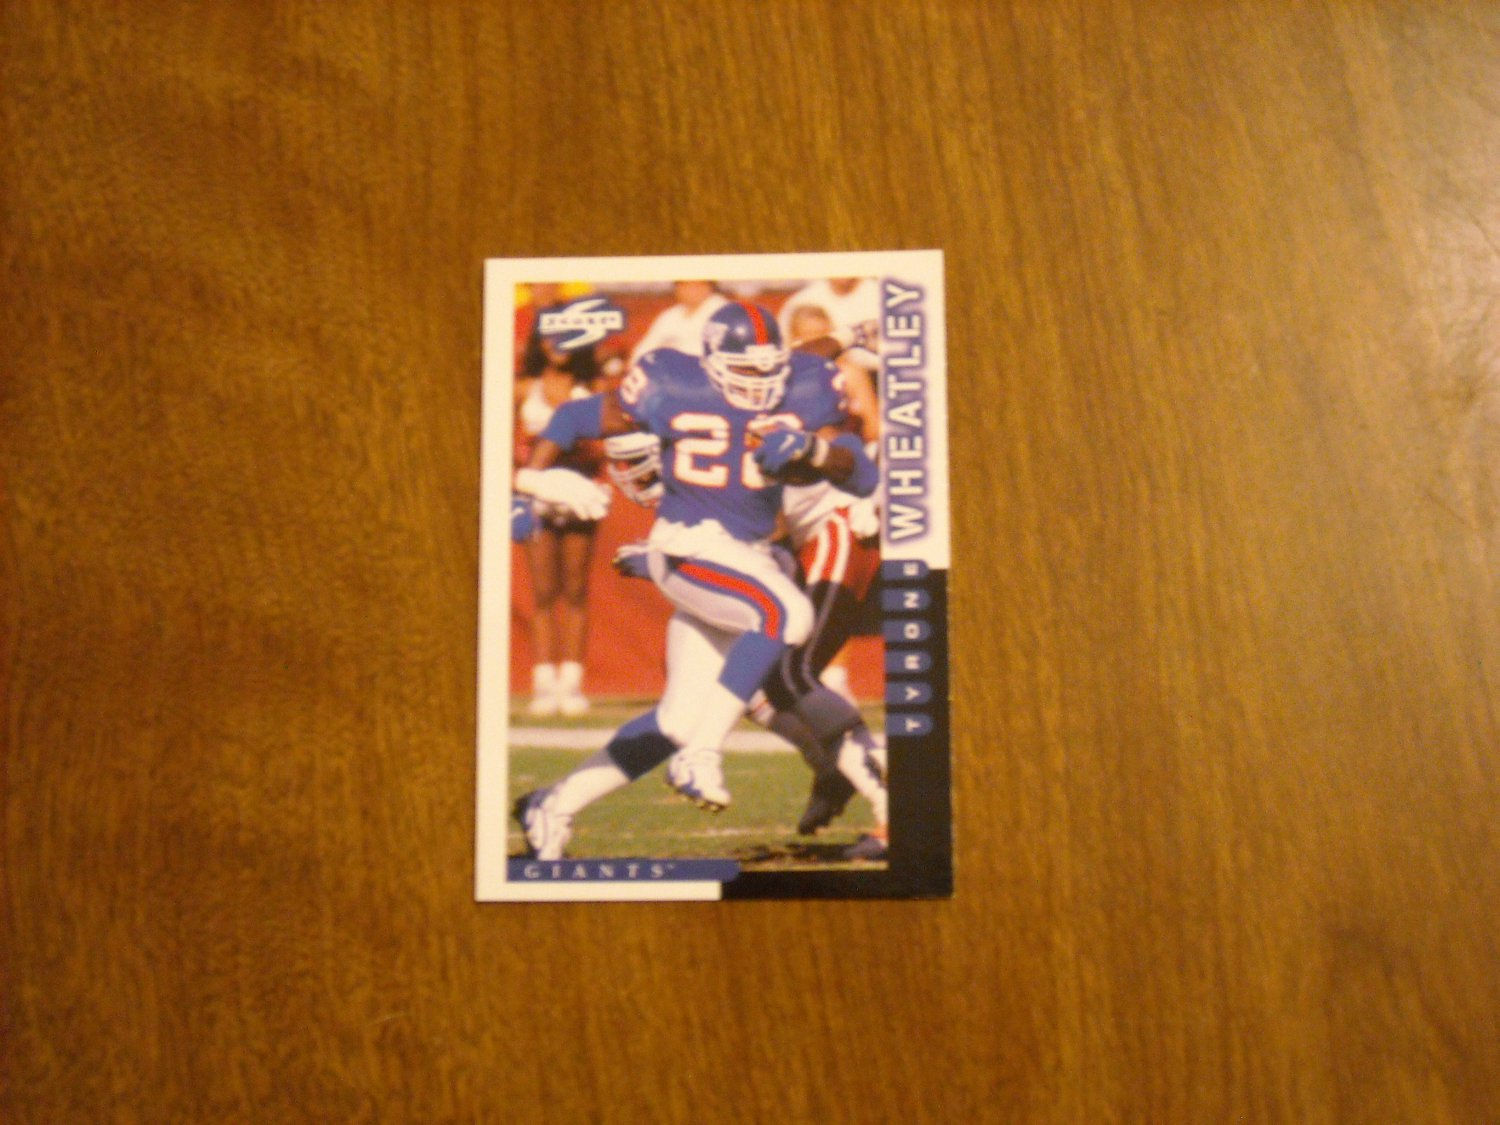 Tyrone Wheatley New York Giants RB Card No. 69 - 1998 Pinnacle Score Football Card